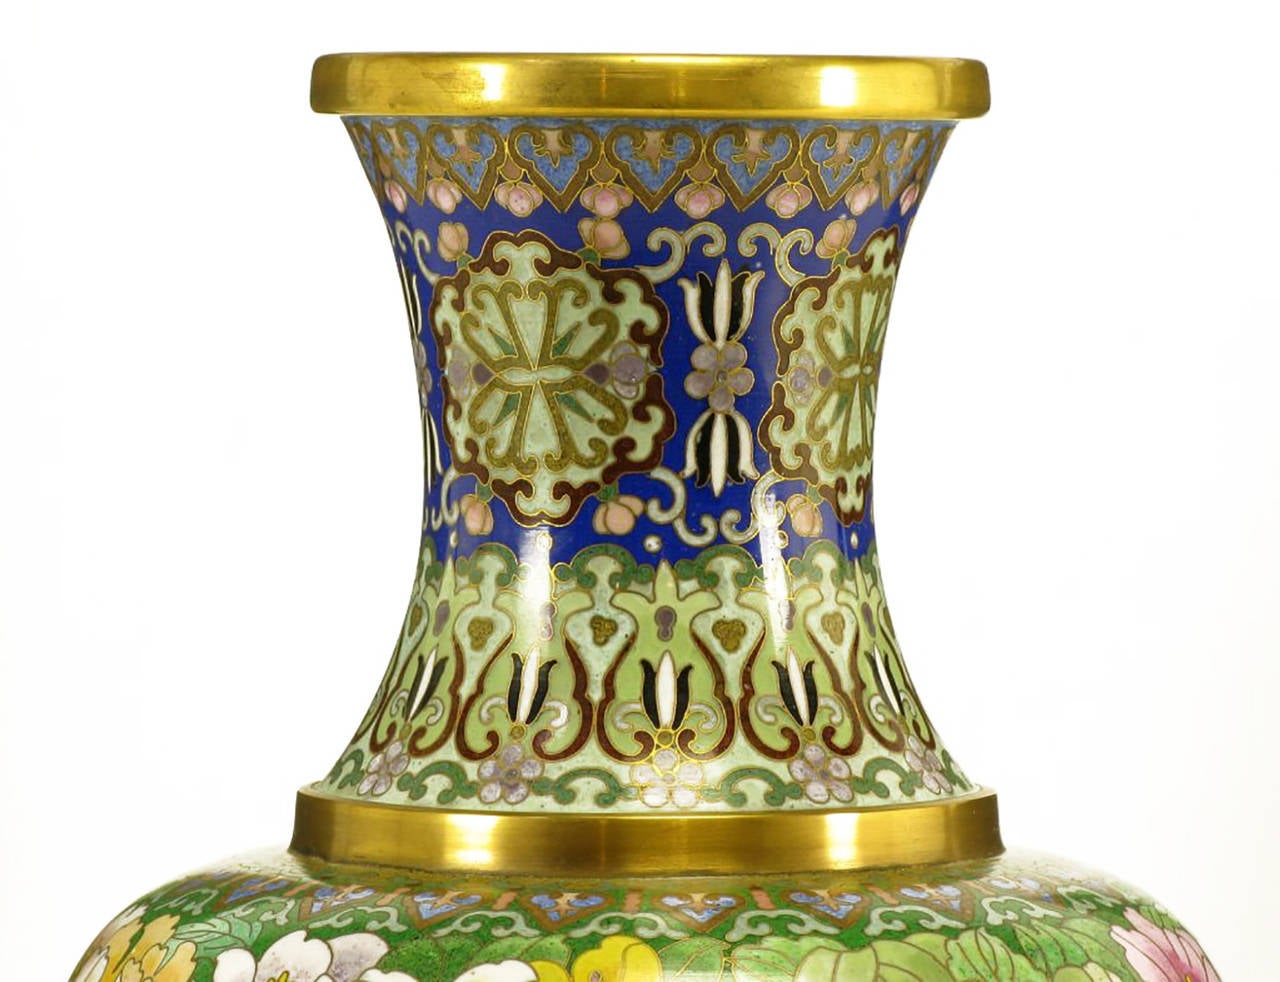 Late 20th Century Pair of Colorful Chinese Jingfa Cloisonné Vases with Carved Mahogany Bases For Sale